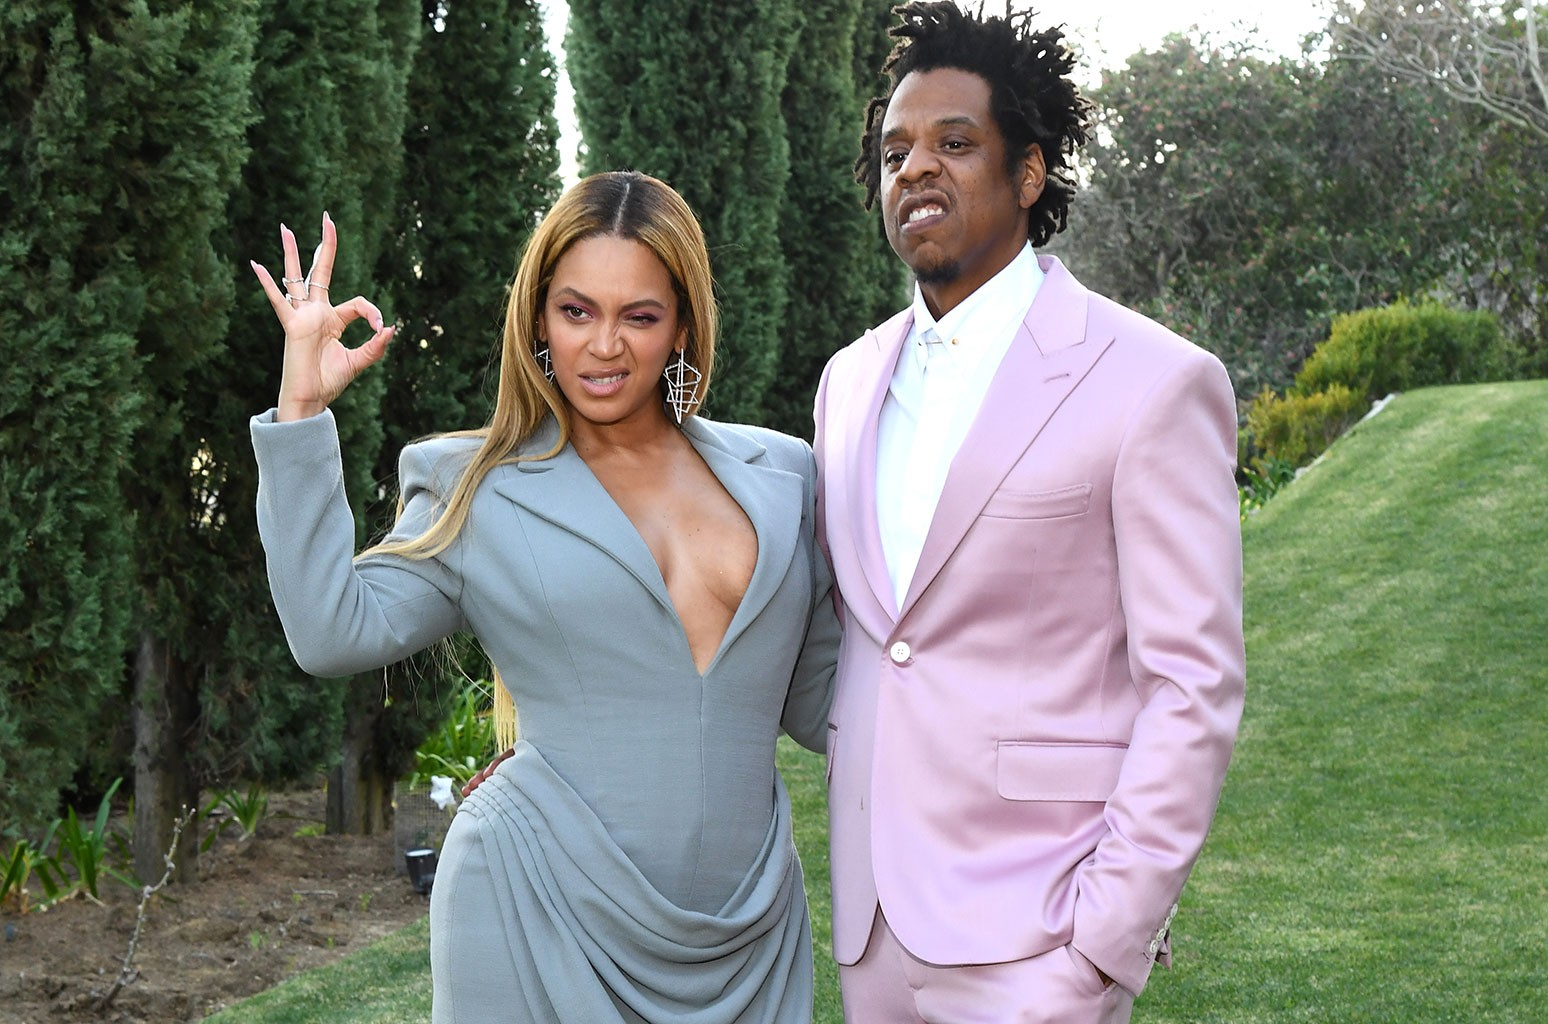 Jay-Z and Beyoncé Partner With Tiffany & Co. To Award Scholarships to HBCUs